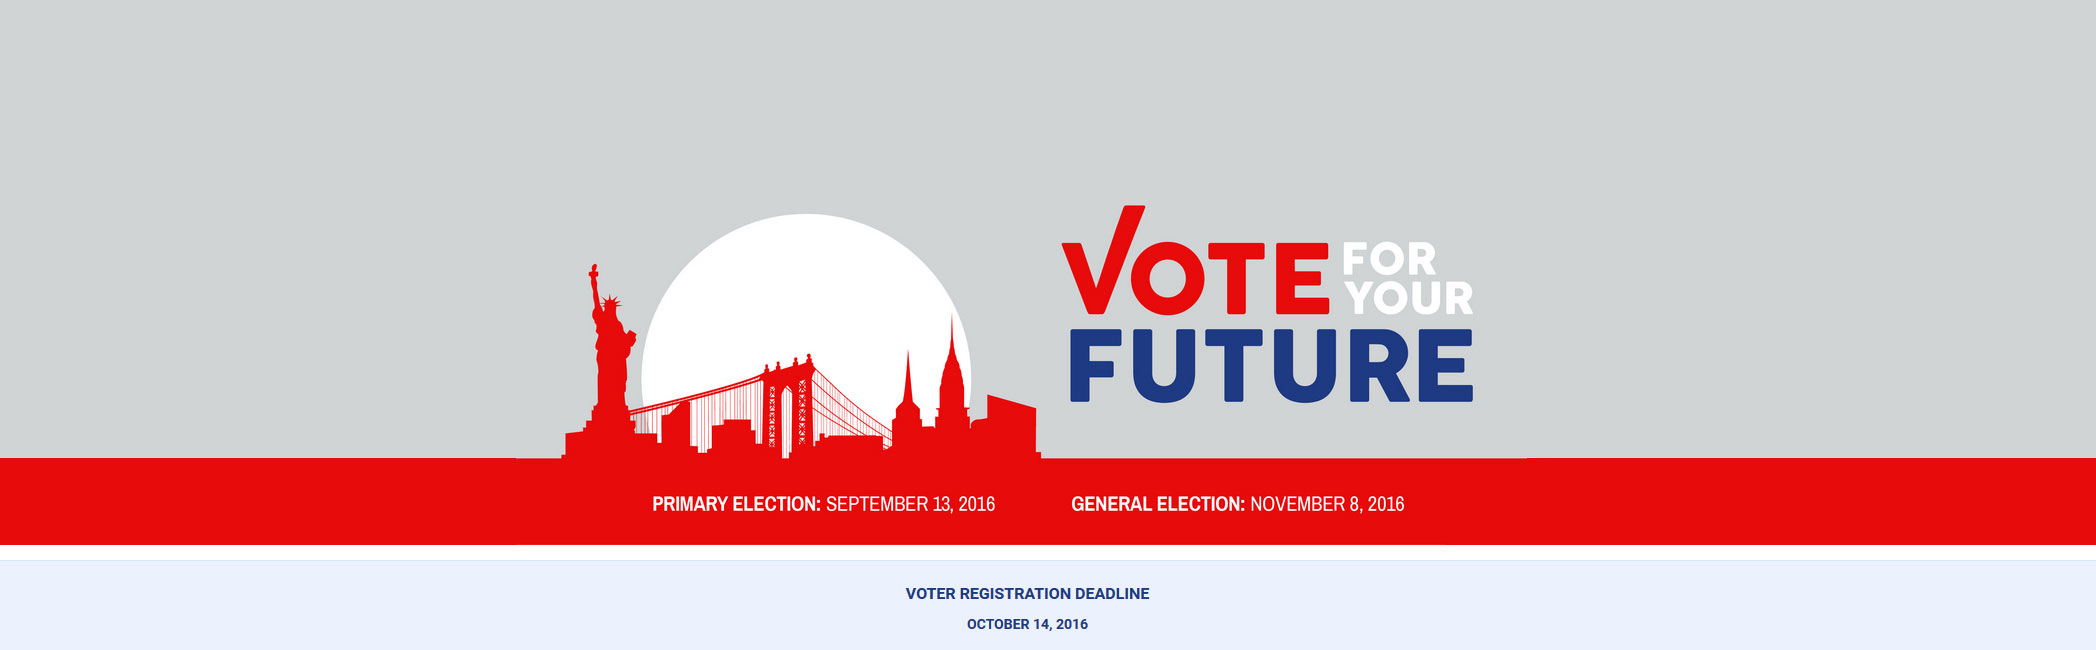 Vote for Your Future: Register to Vote